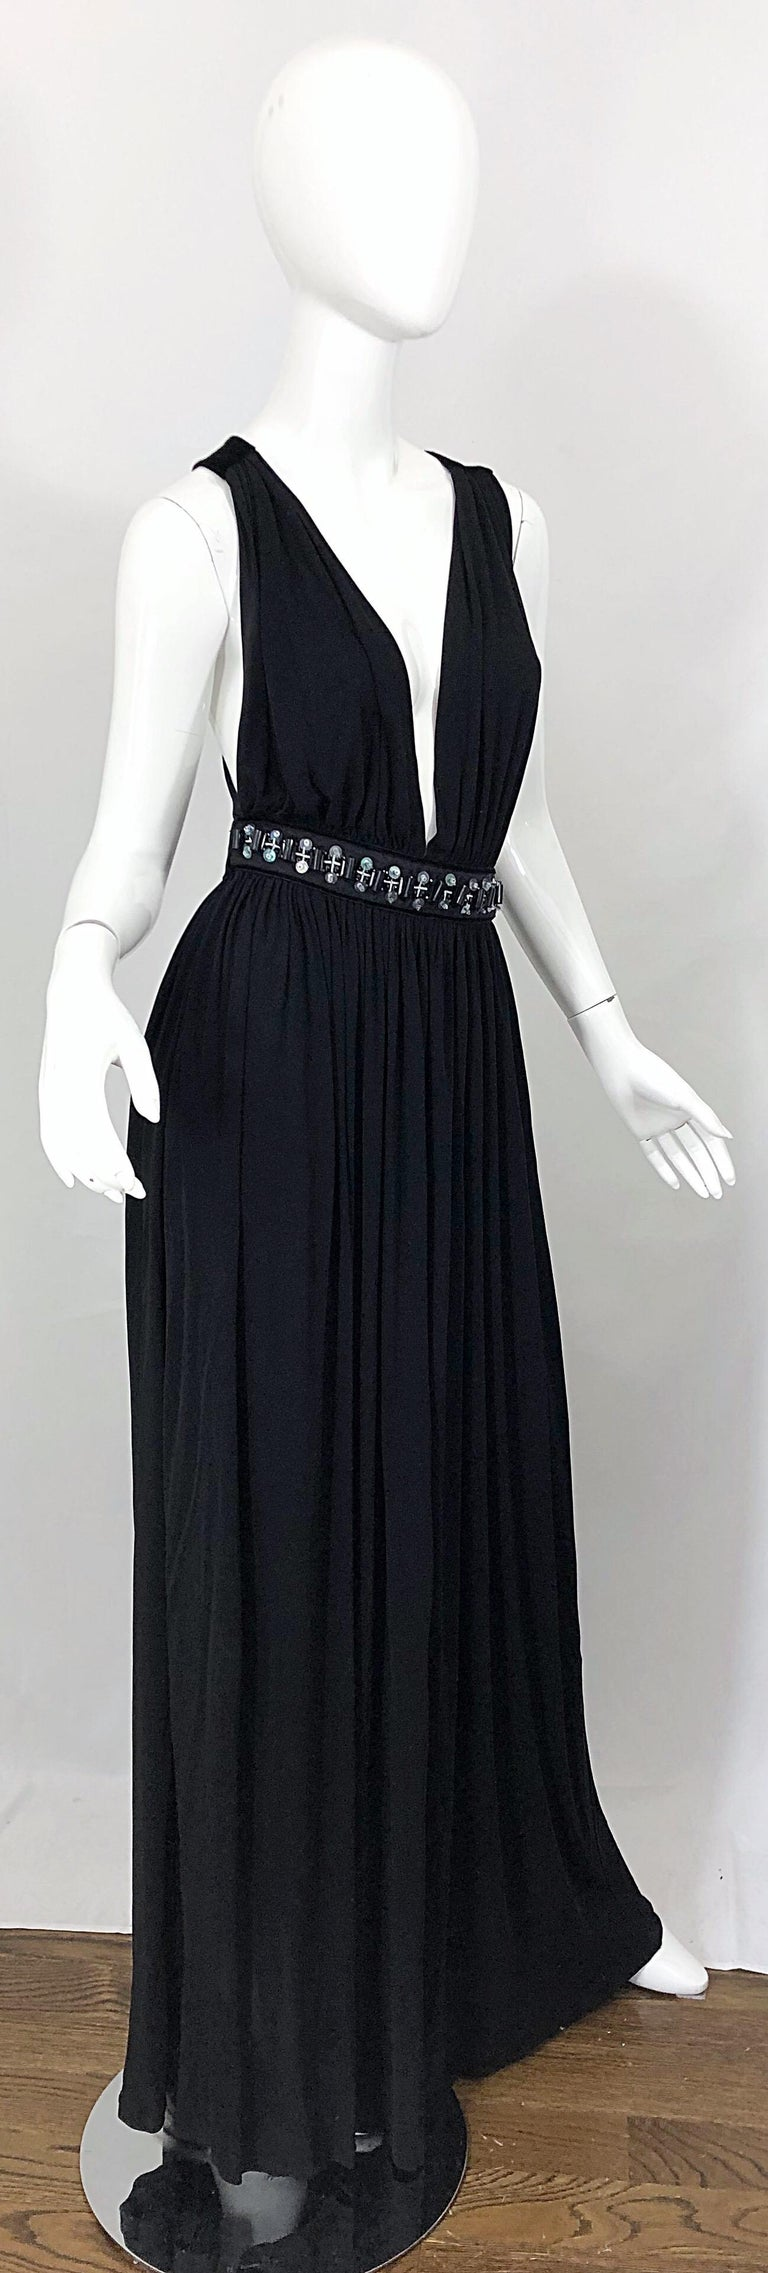 1990s Dolce & Gabbana D&G Black Plunging Sexy Beaded Sleeveless Vintage 90s Gown For Sale 8